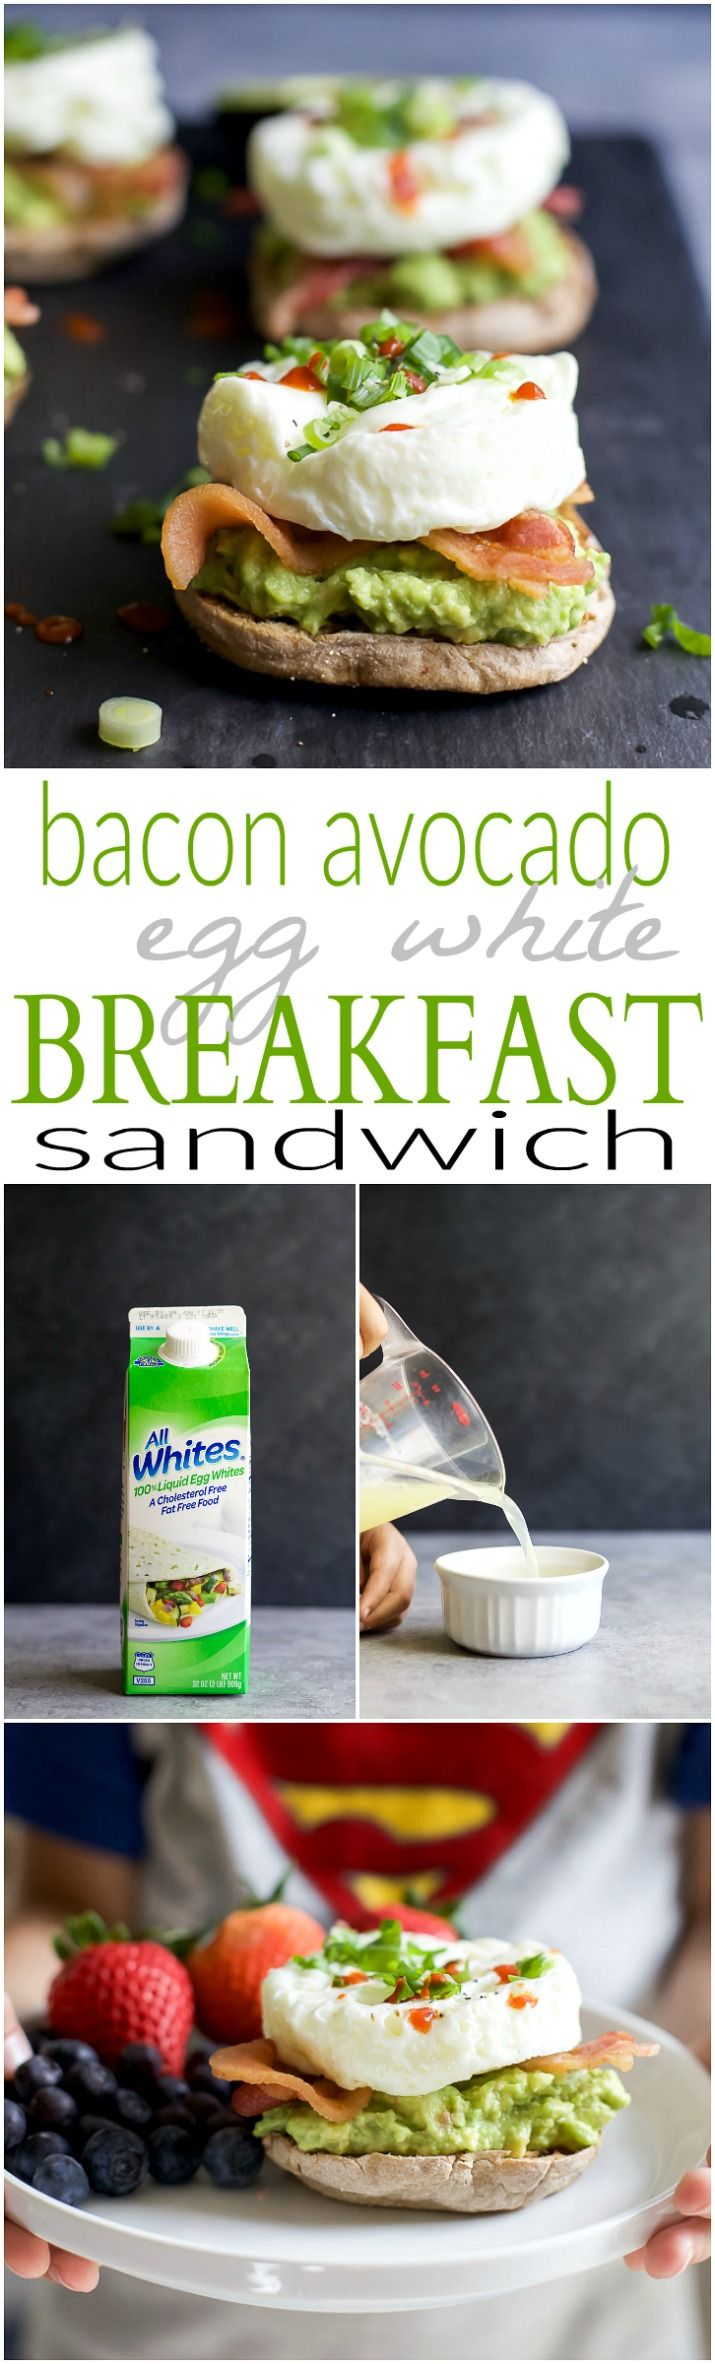 Easy 15 minute BACON AVOCADO EGG WHITE BREAKFAST SANDWICH, an easy power breakfast with 15 grams of protein and only 279 calories per serving! #allwhiteseggwhites #ad